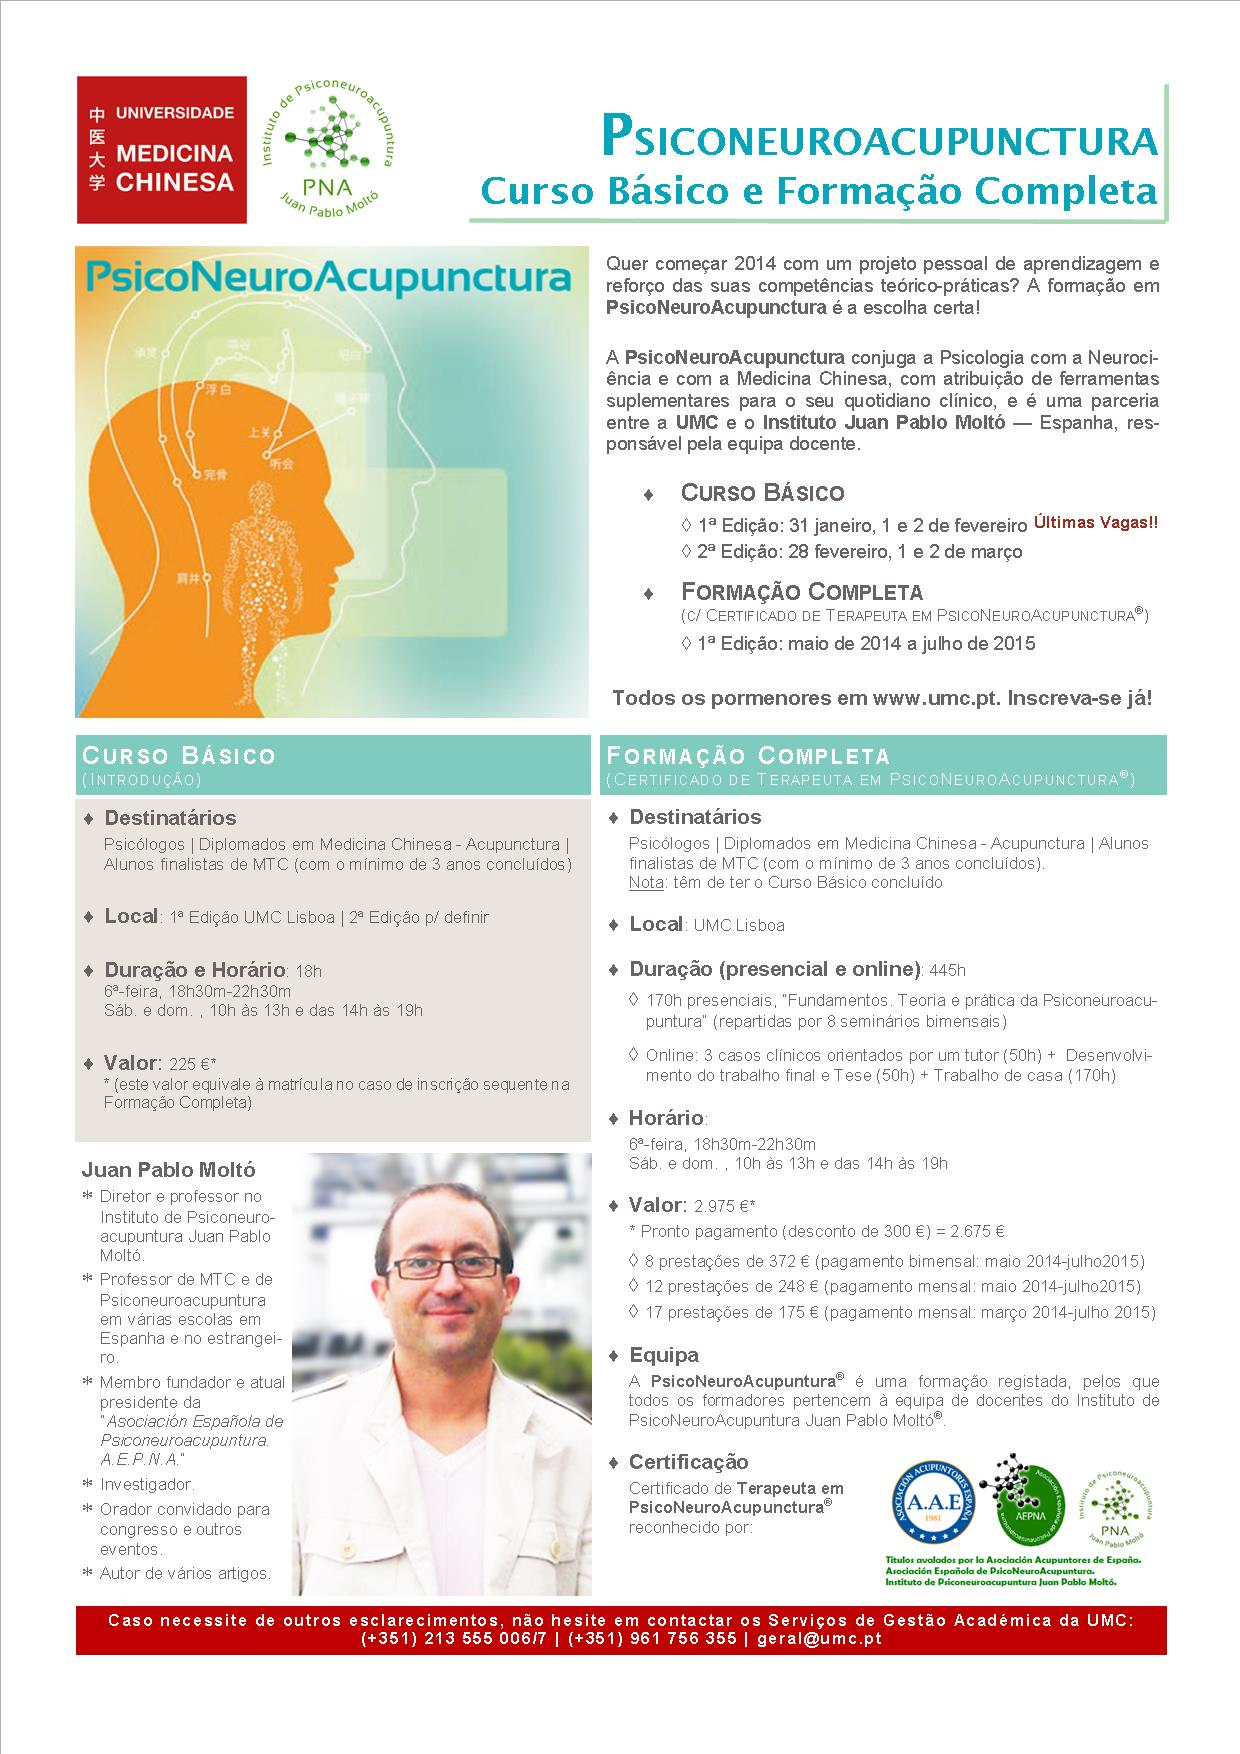 e mail tipo psiconeuroacupunctura  informacoes formatonet